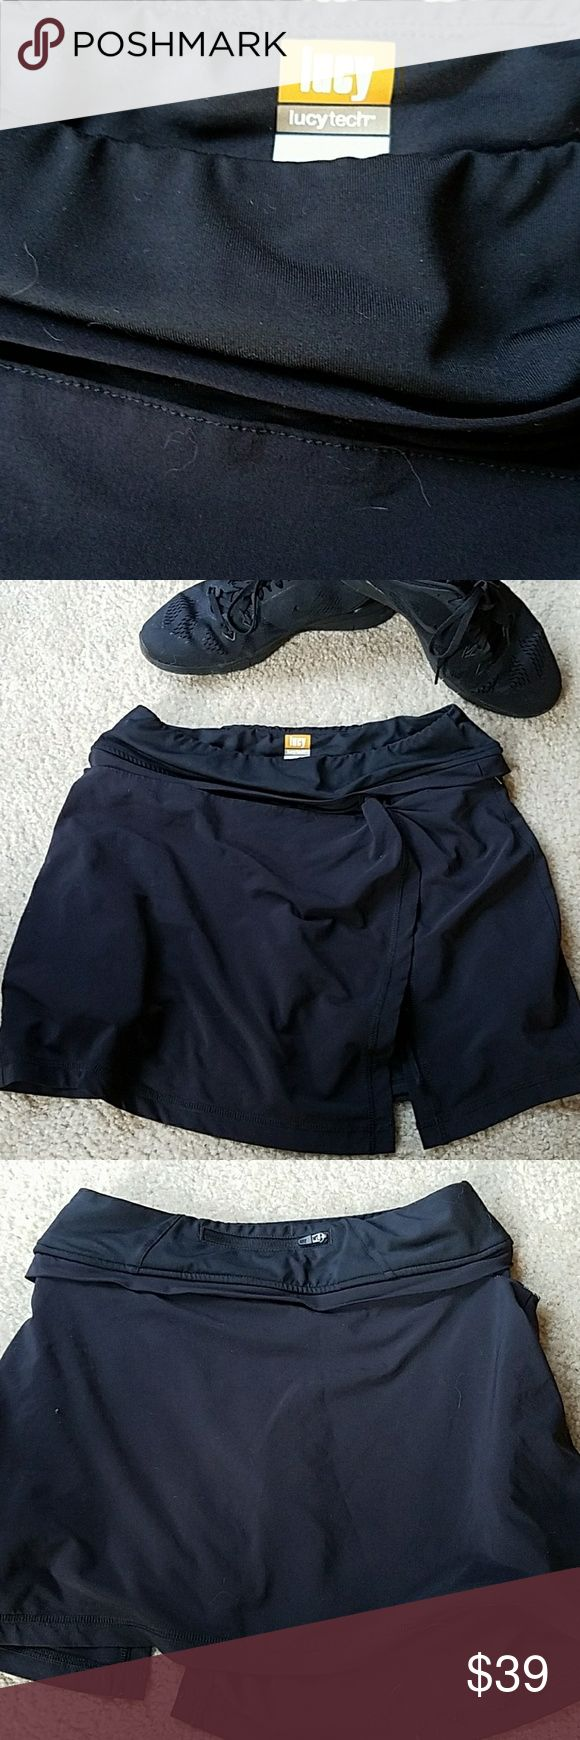 Awesome LUCY workout skorts. Skirt zips off if you want to wear shorts. Shorts have pockets on both sides. Skirt has one back pocket. Skirt is longer hits mid-thigh. Fits xs-med. Lucy Shorts